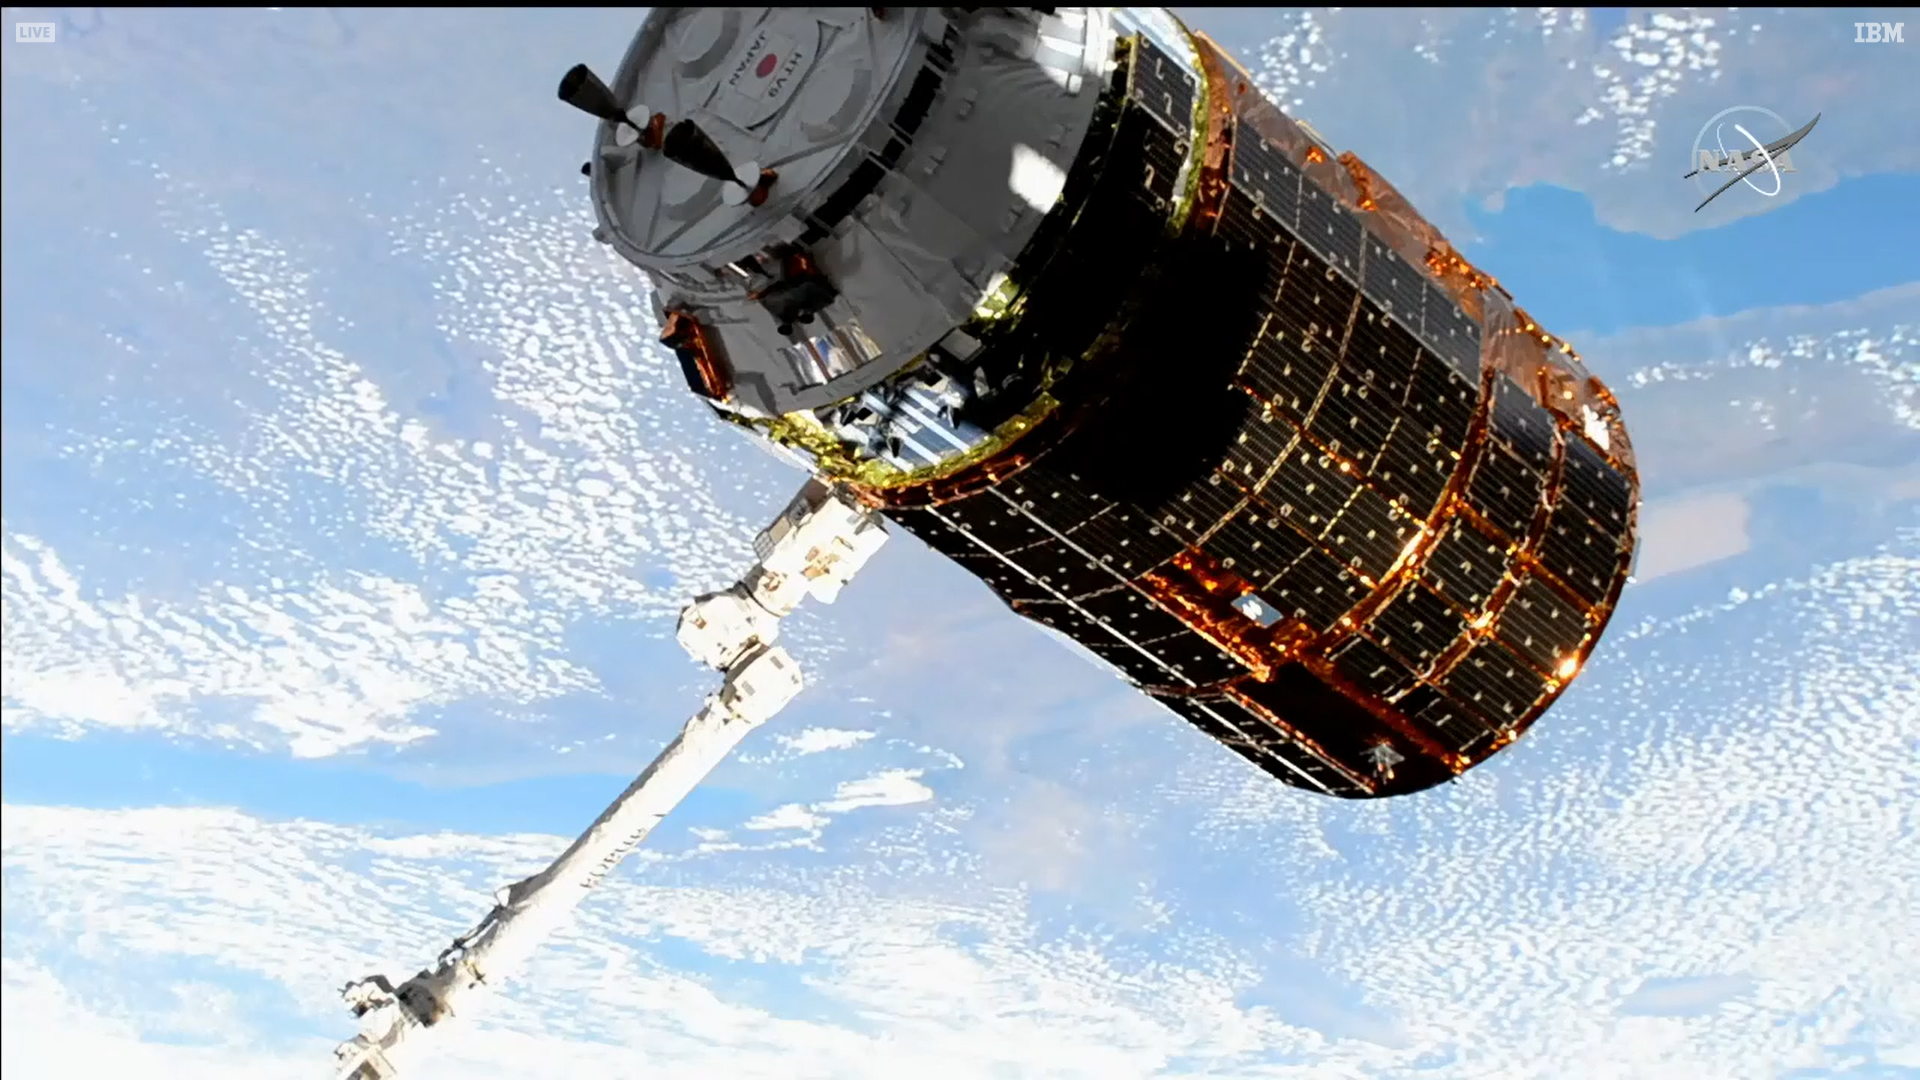 Japan's HTV-9 resupply ship is pictured in the grips of the Canadarm2 robotic arm